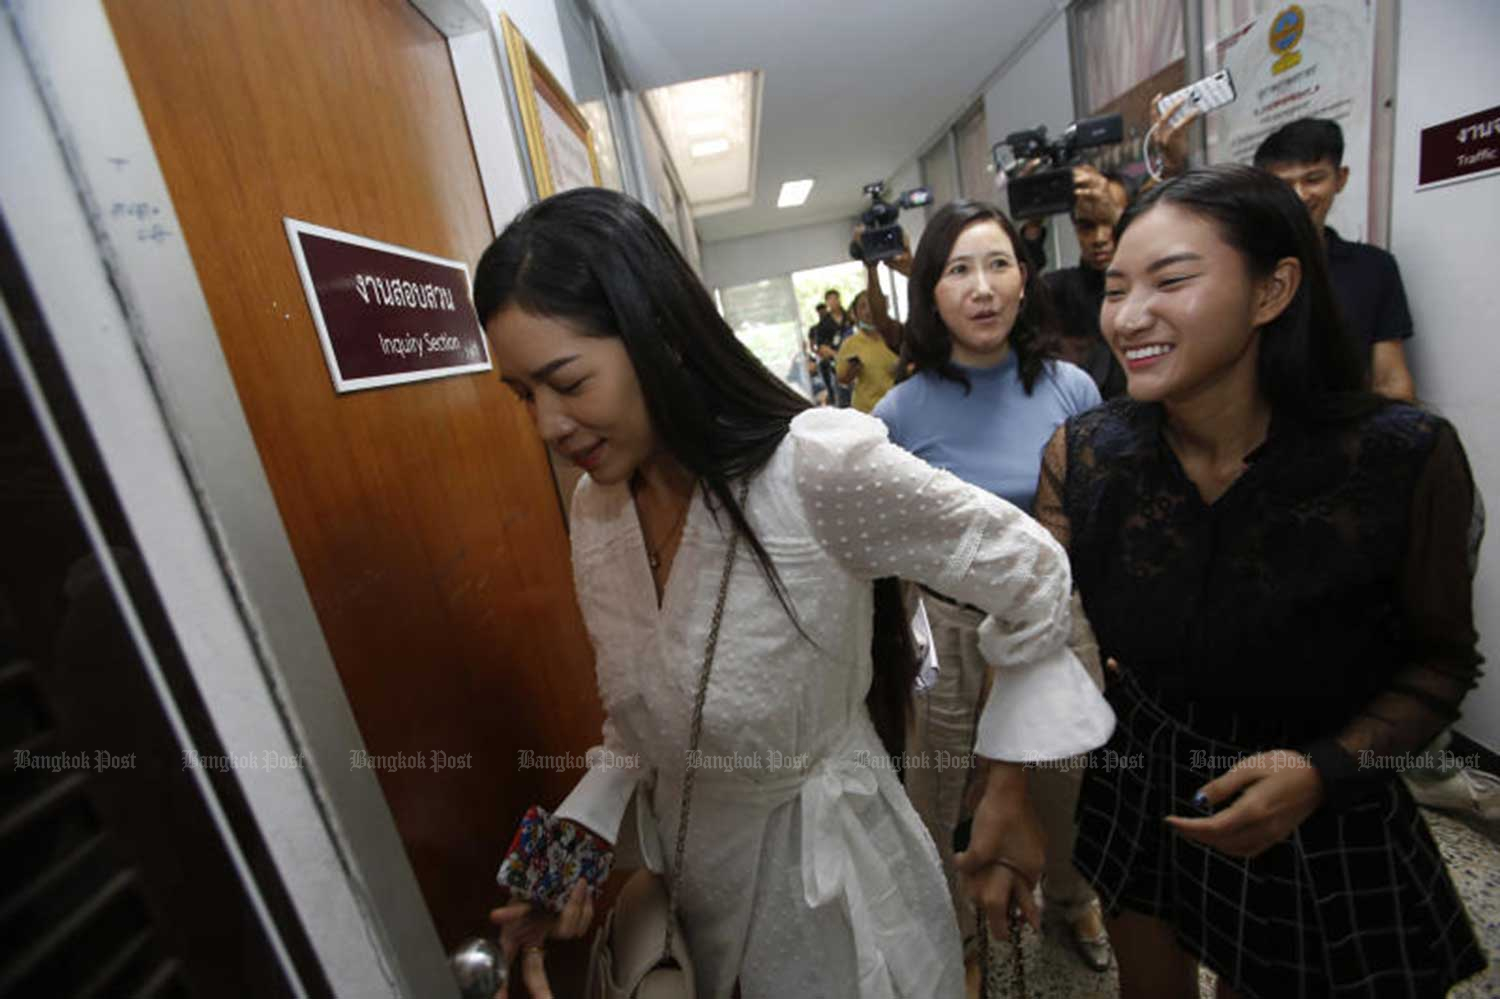 Product presenters who are friends of Thitima Noraphanpiphat arrive at the Bukkhalo police station on Thursday to discuss the case with investigators. (Photo by Pornprom Satrabhaya)